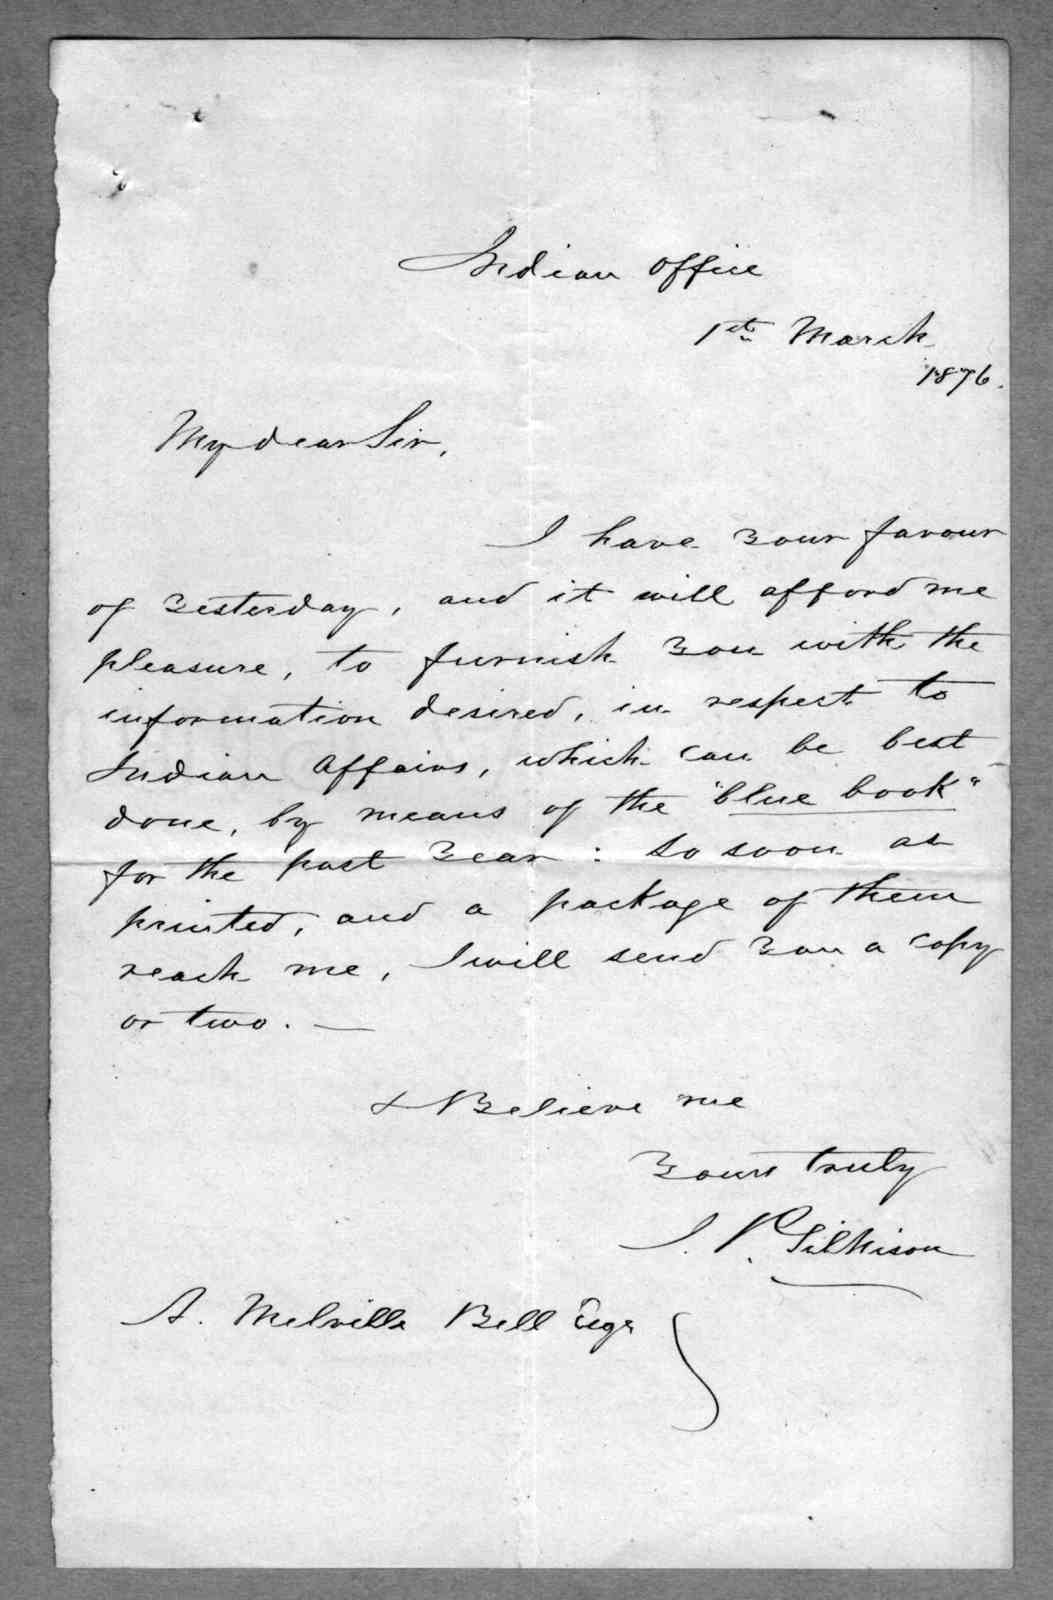 Letter from Eliza Symonds Bell to Alexander Graham Bell, March 29, 1876